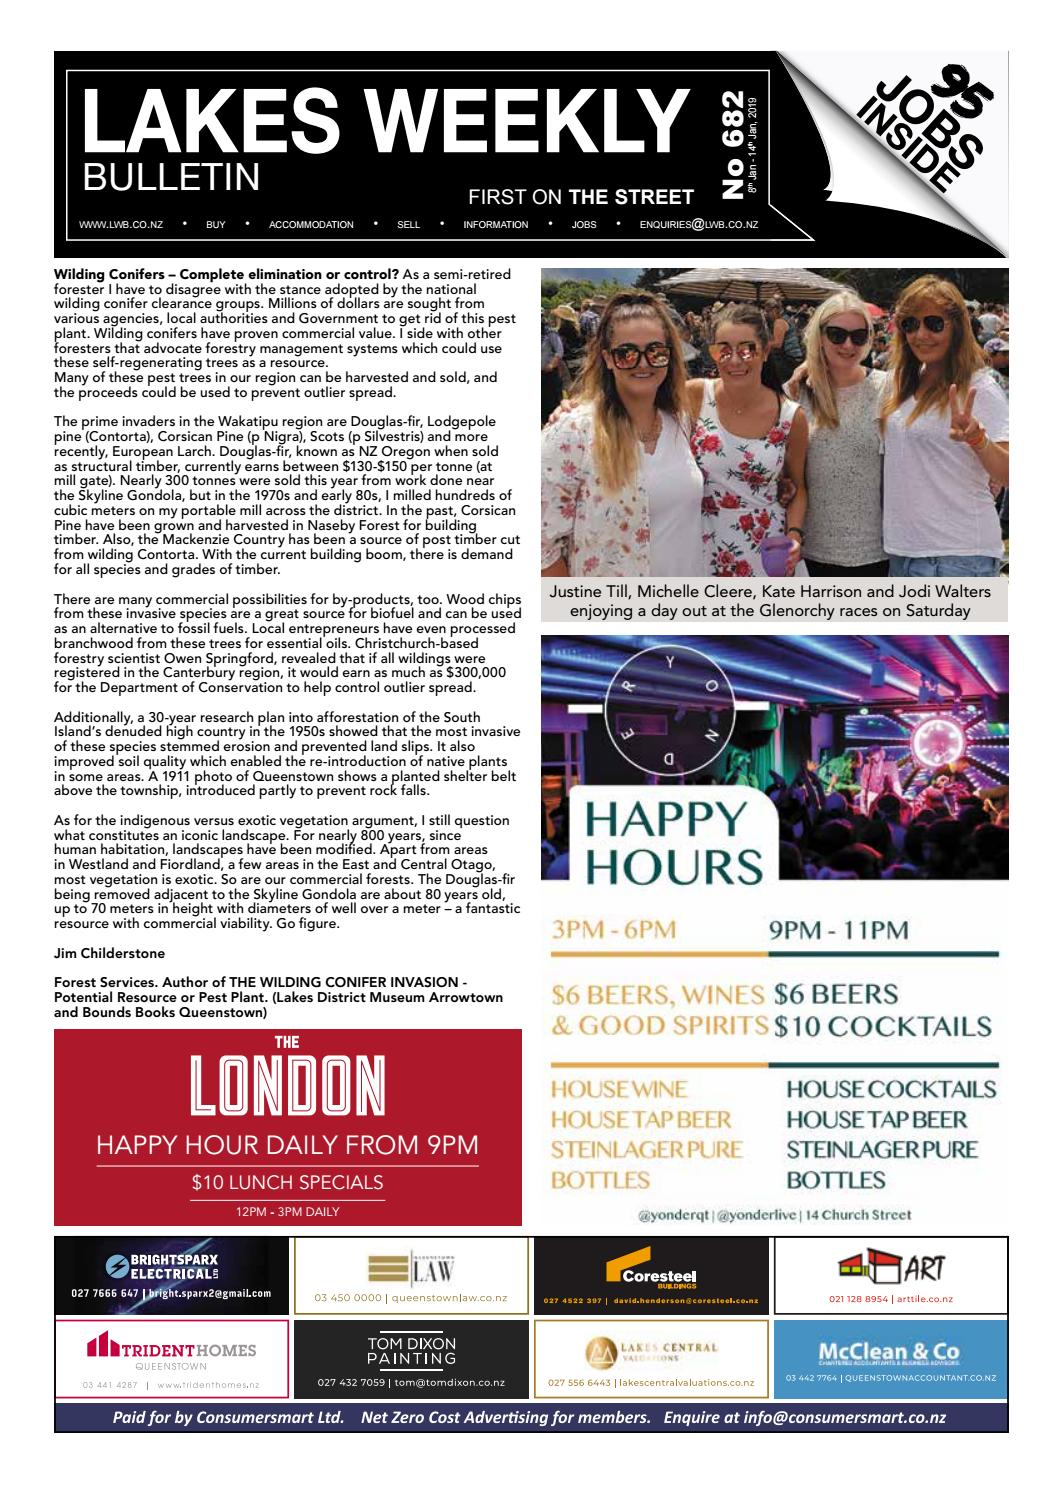 Issue 682 by Lakes Weekly Bulletin - issuu